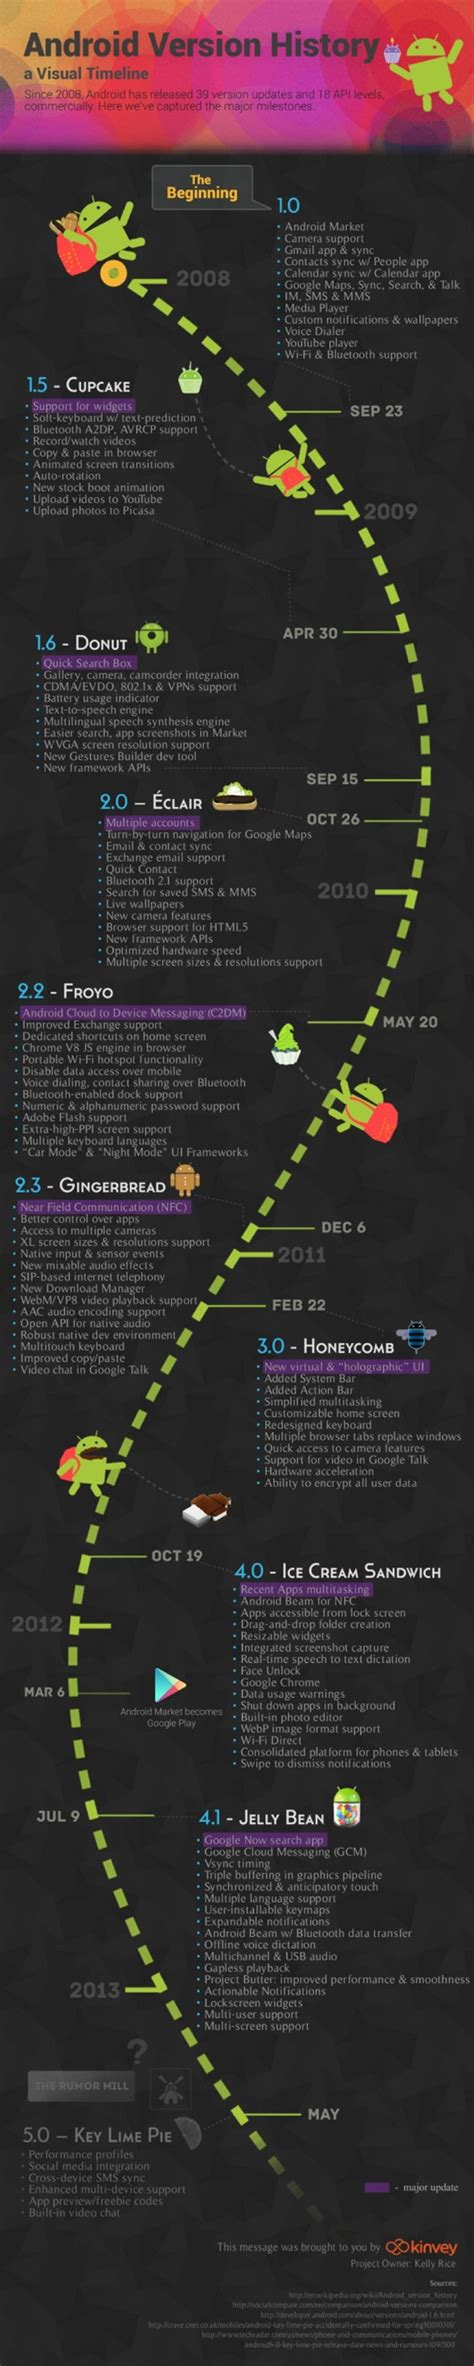 android founder android version history guide v1 0 to v4 1 jelly bean infographic redmond pie